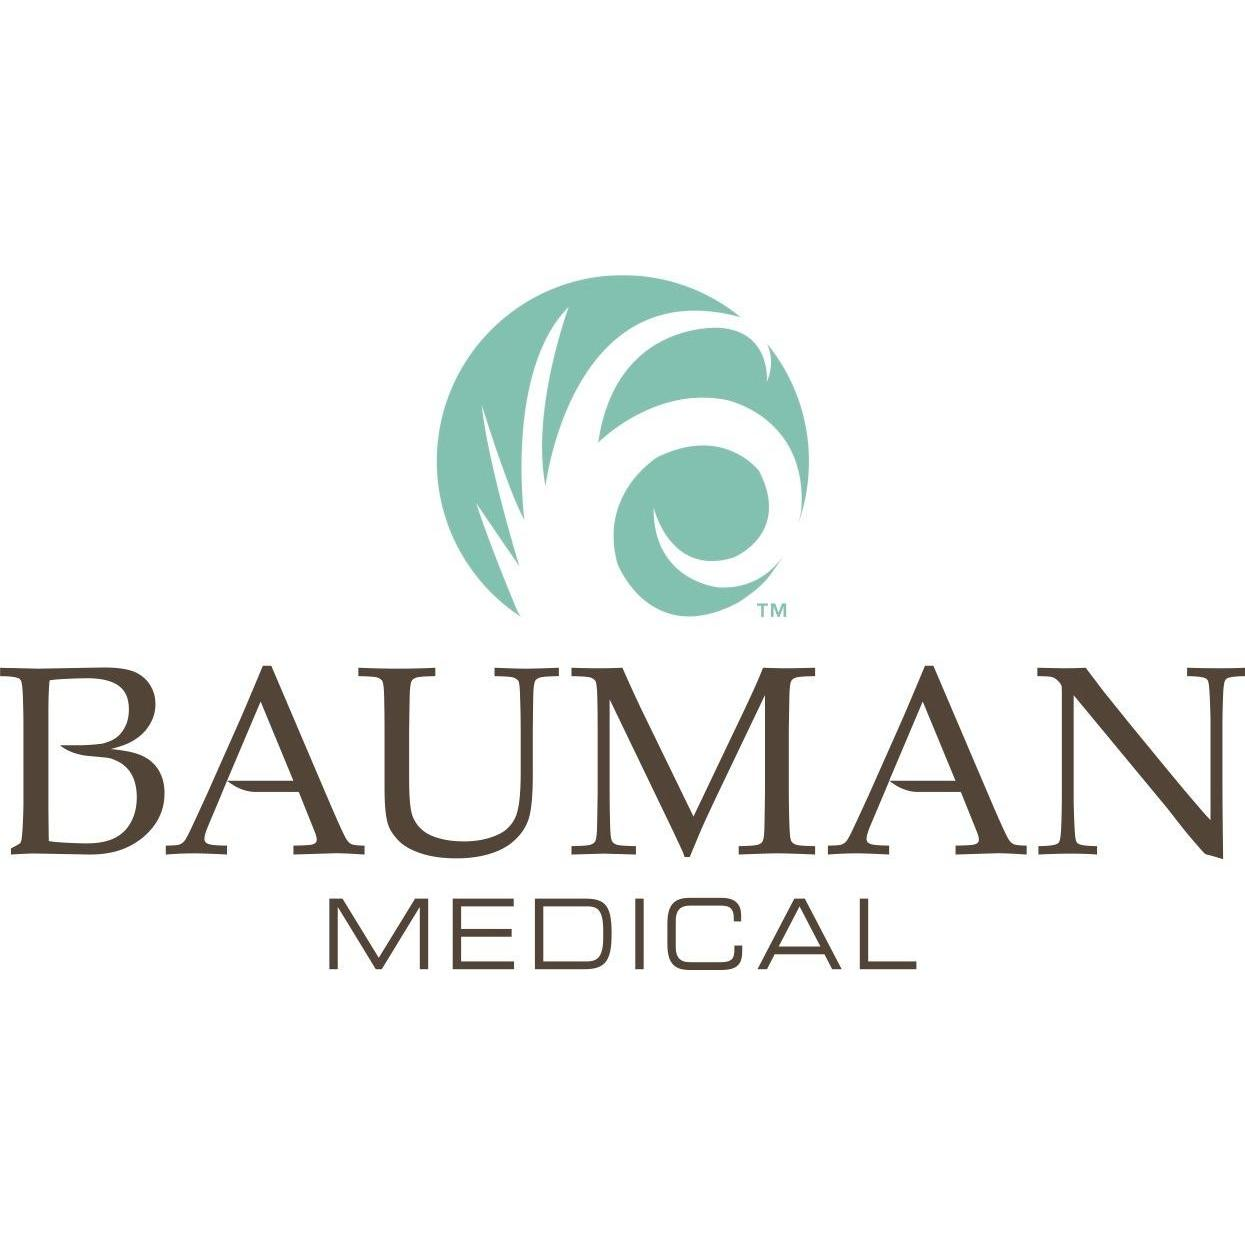 Dr. Alan J. Bauman - Bauman Medical Group Hair Transplant and Hair Loss Treatment Center